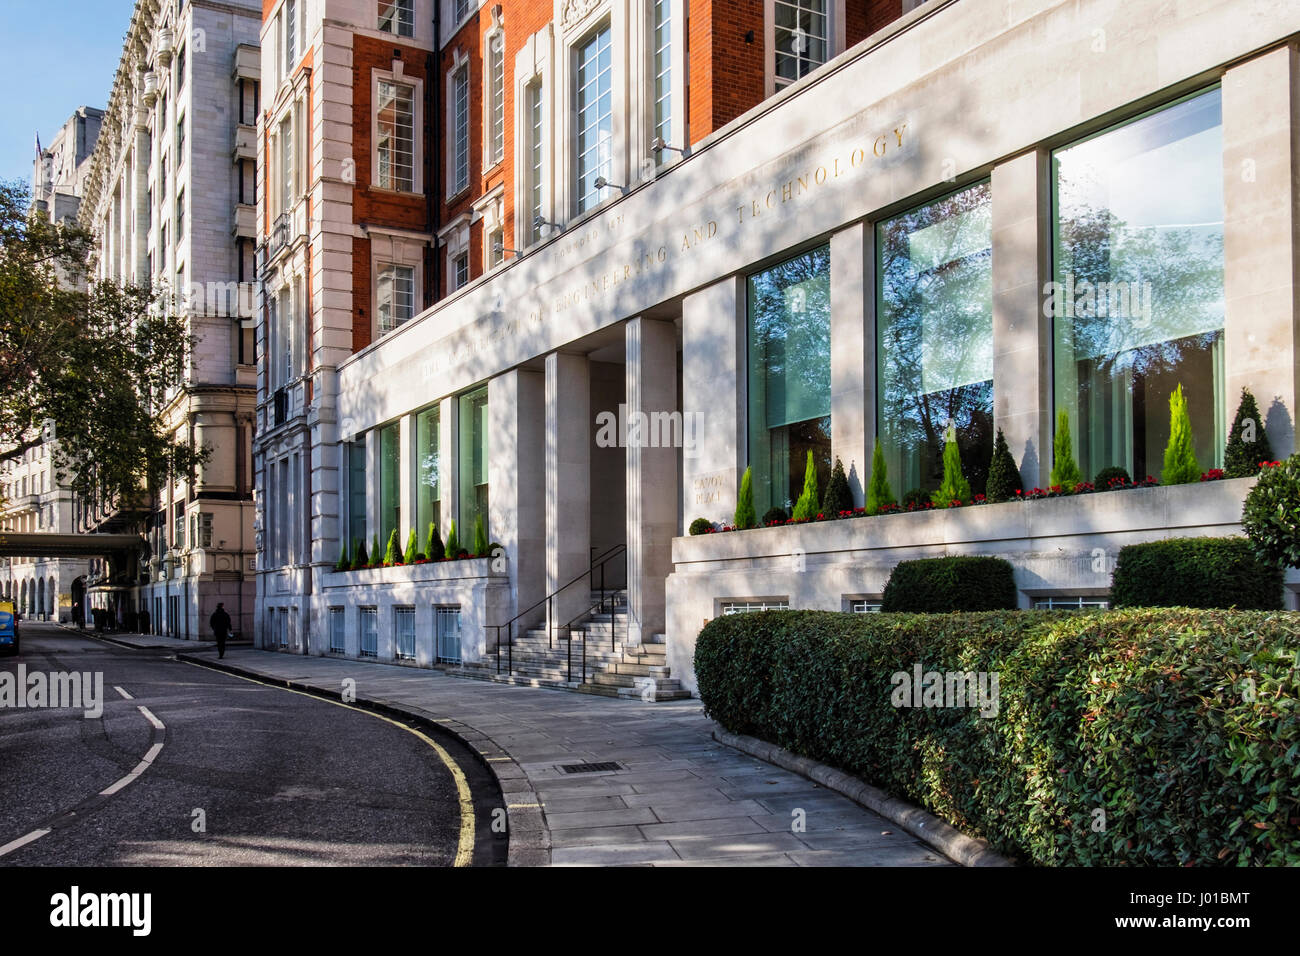 The Institute Of Engineering and Technology Headquarters, Savoy Place,London,UK. Historic red and brick stone building - Stock Image